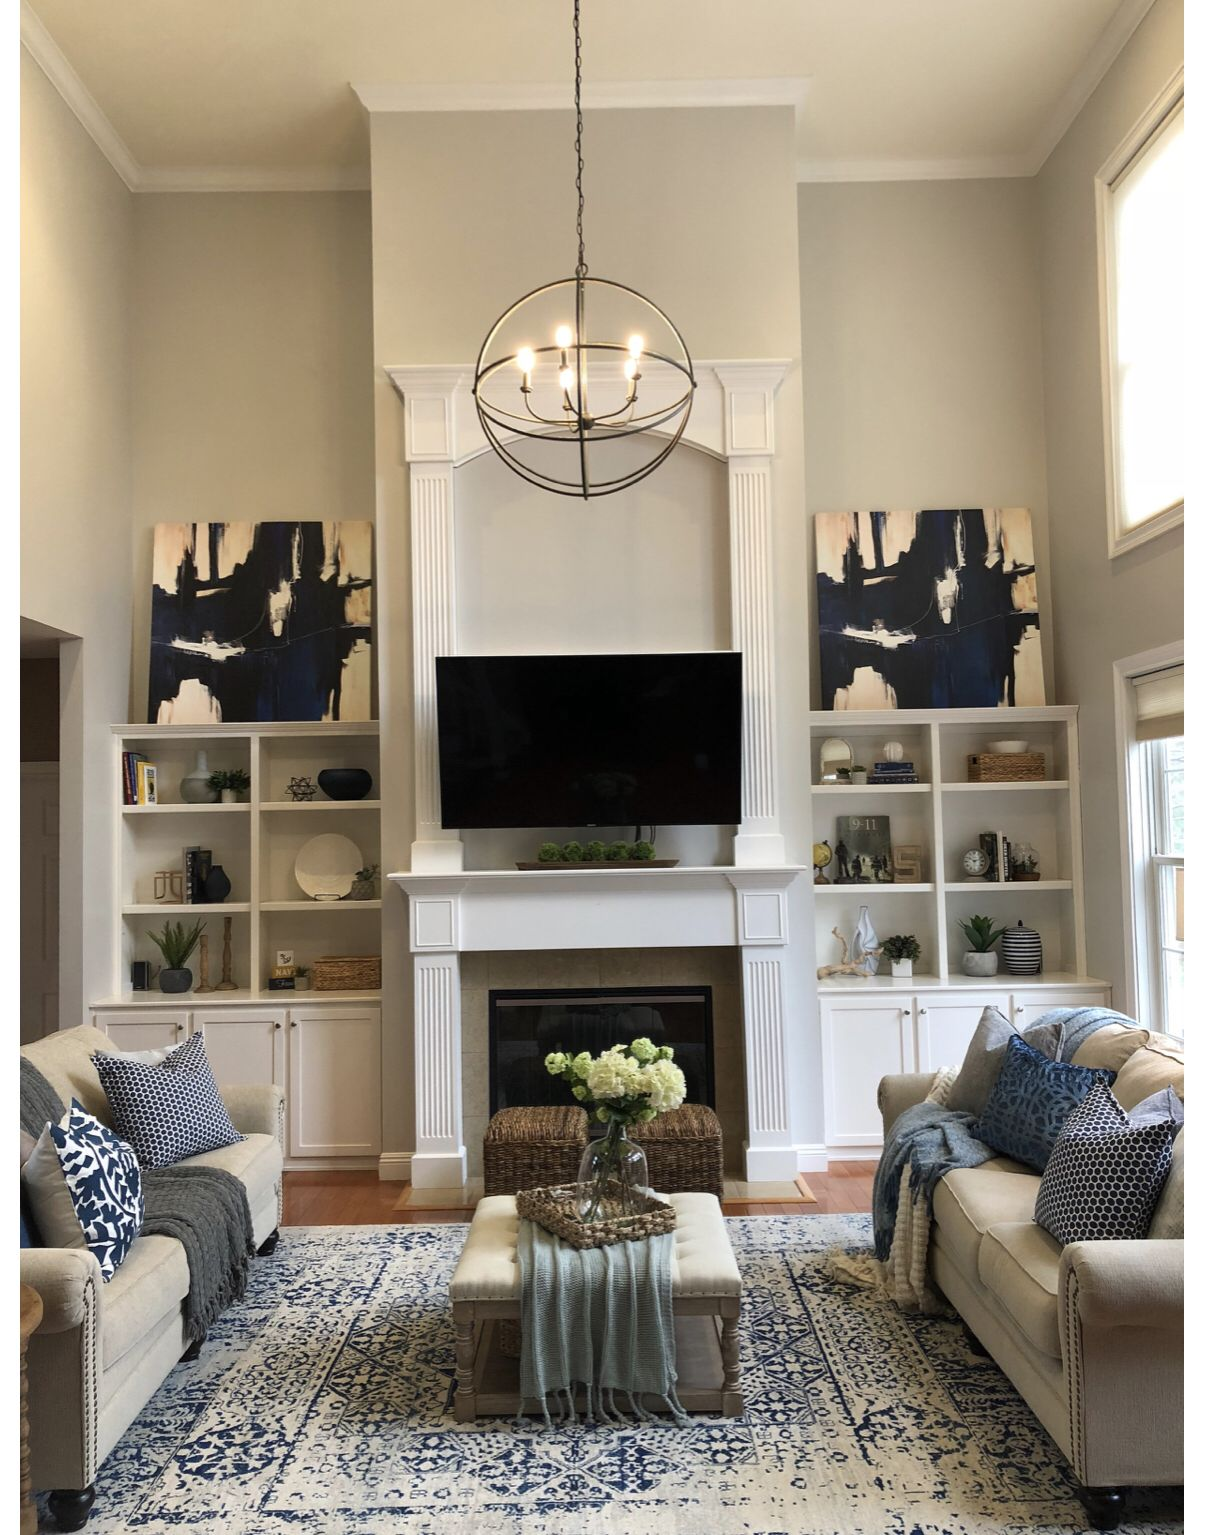 Sherwin Williams Paint Living Room Ideas: Paint Is Sherwin Williams Crushed Ice